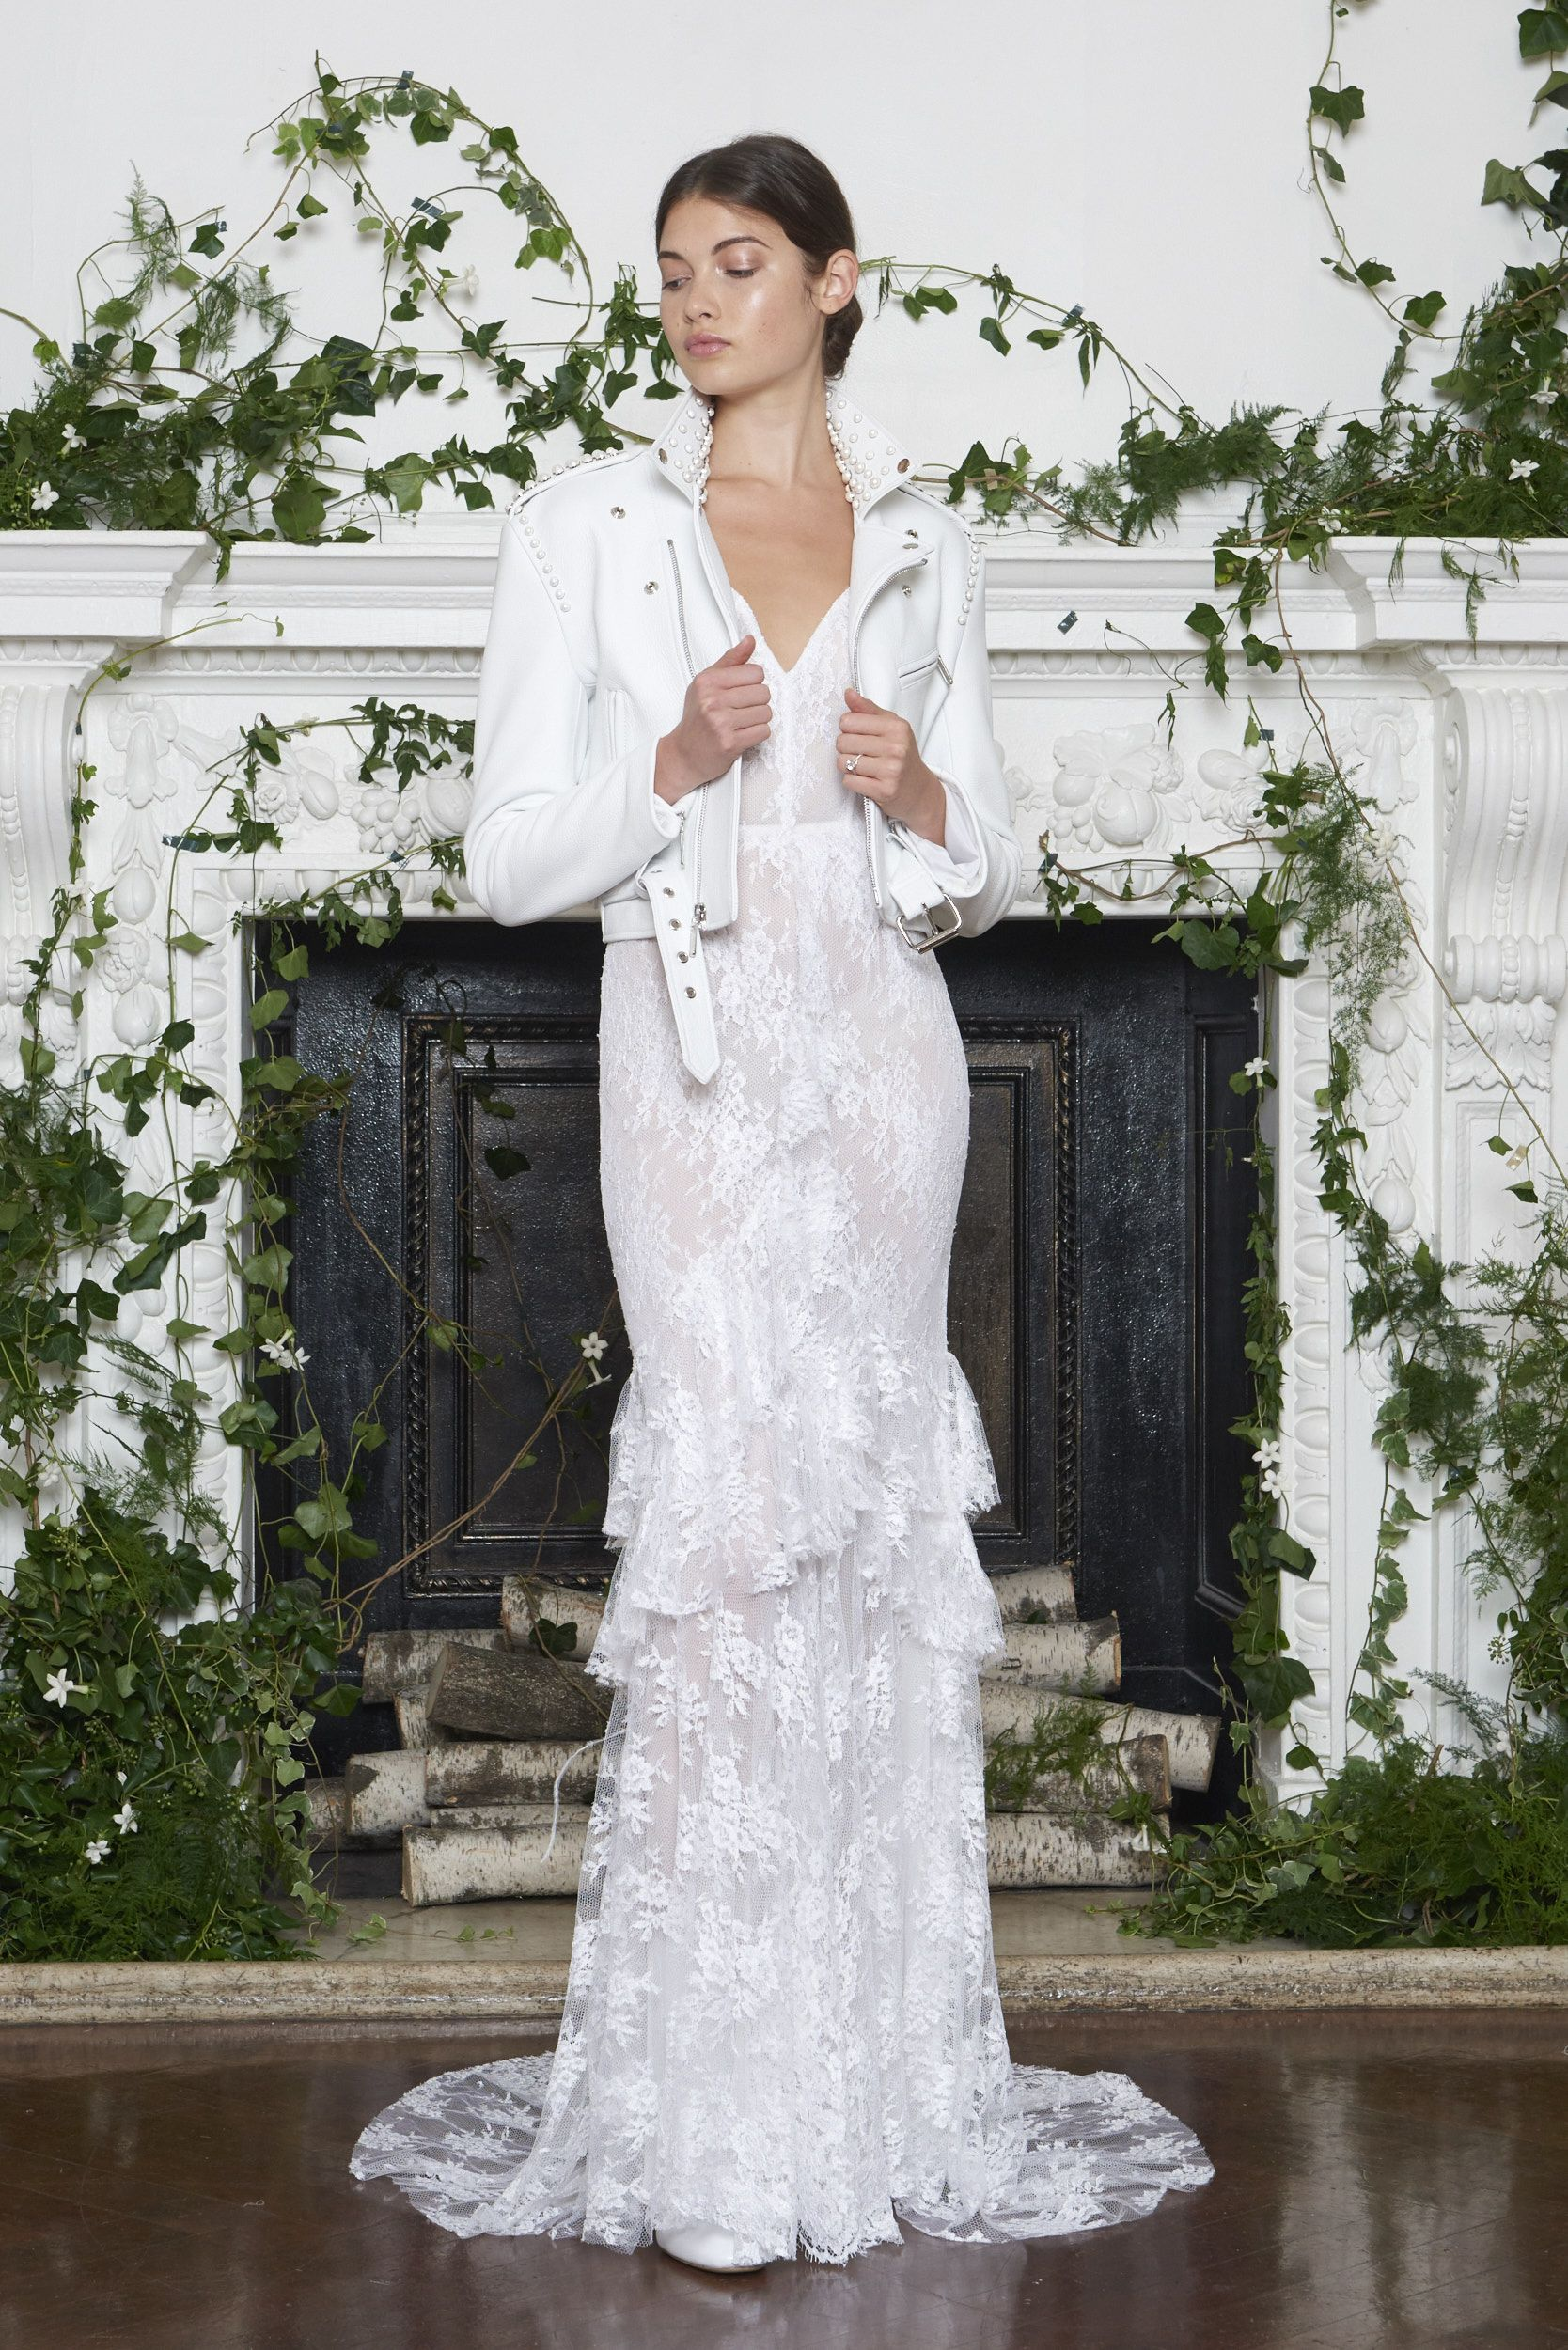 79bdea380e9 Moniquelhuillier fw18 look 1 alexis. Moniquelhuillier fw18 look 1 alexis  2018 Wedding Dresses Trends